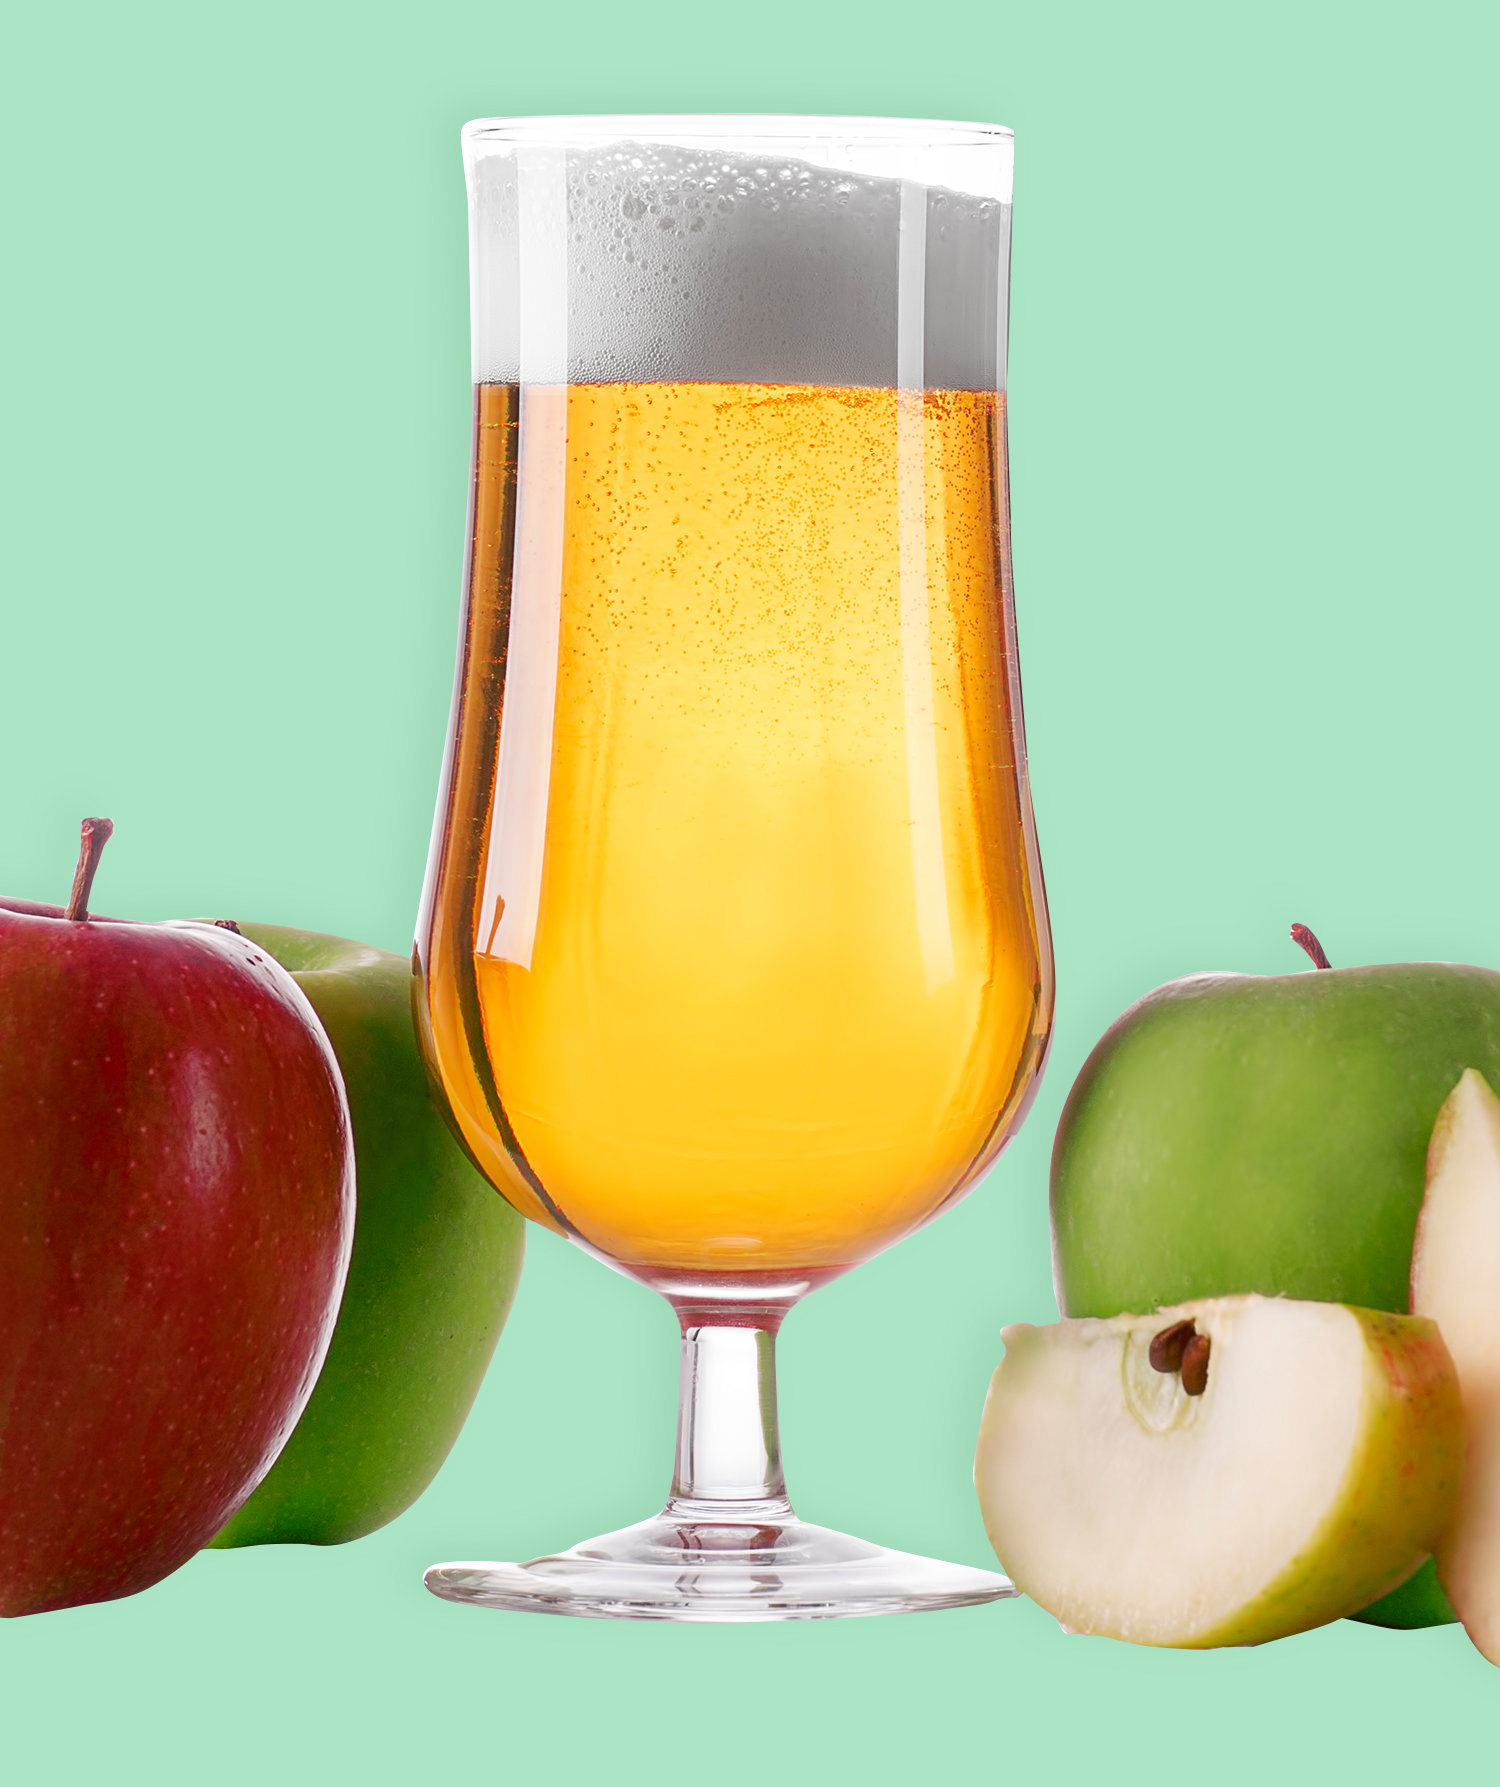 If Hard Apple Cider Is Your Favorite Fall Beverage, Here's What You Should Know